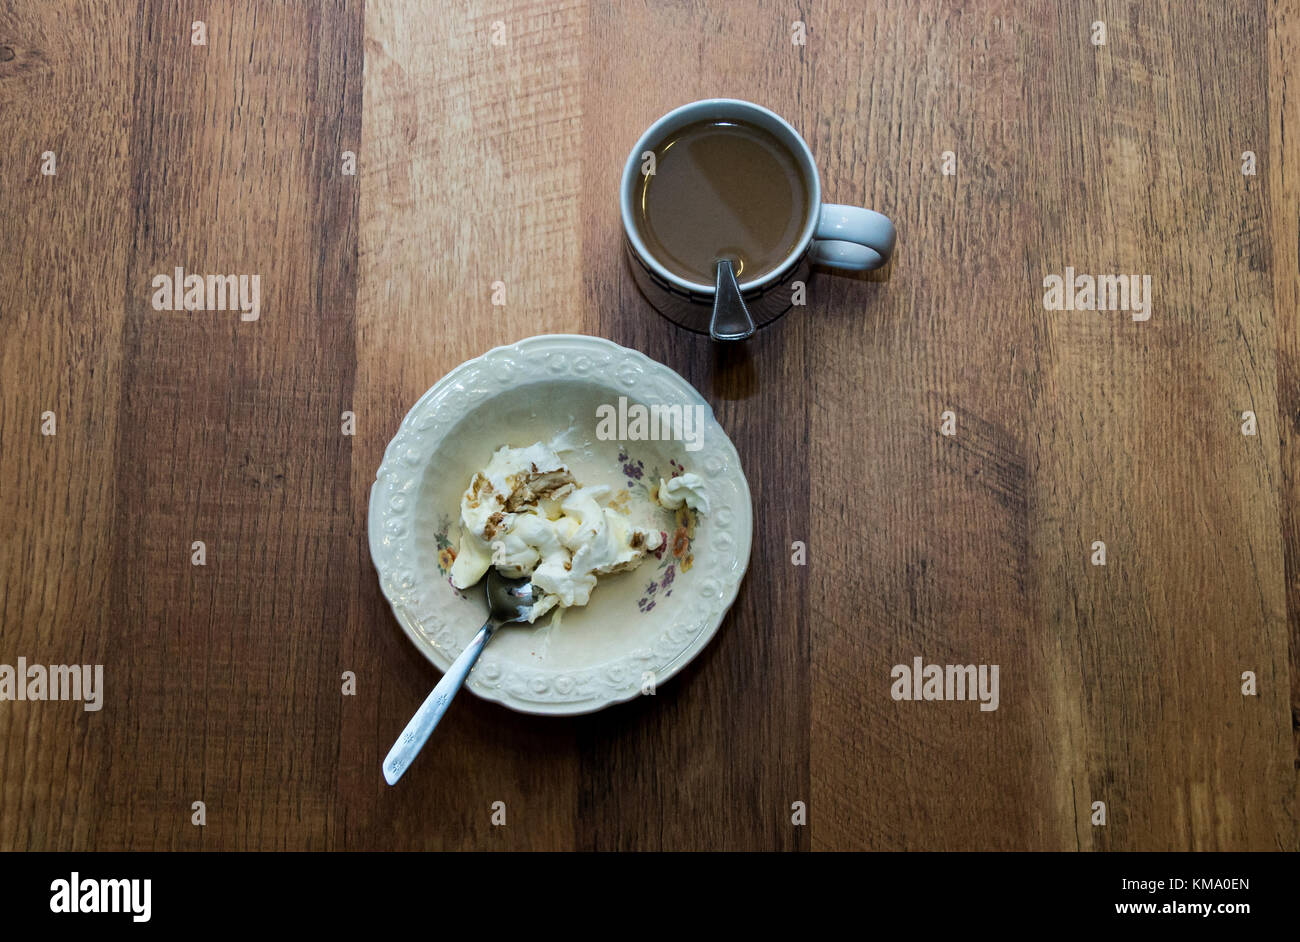 Coffee with a dessert - Stock Image